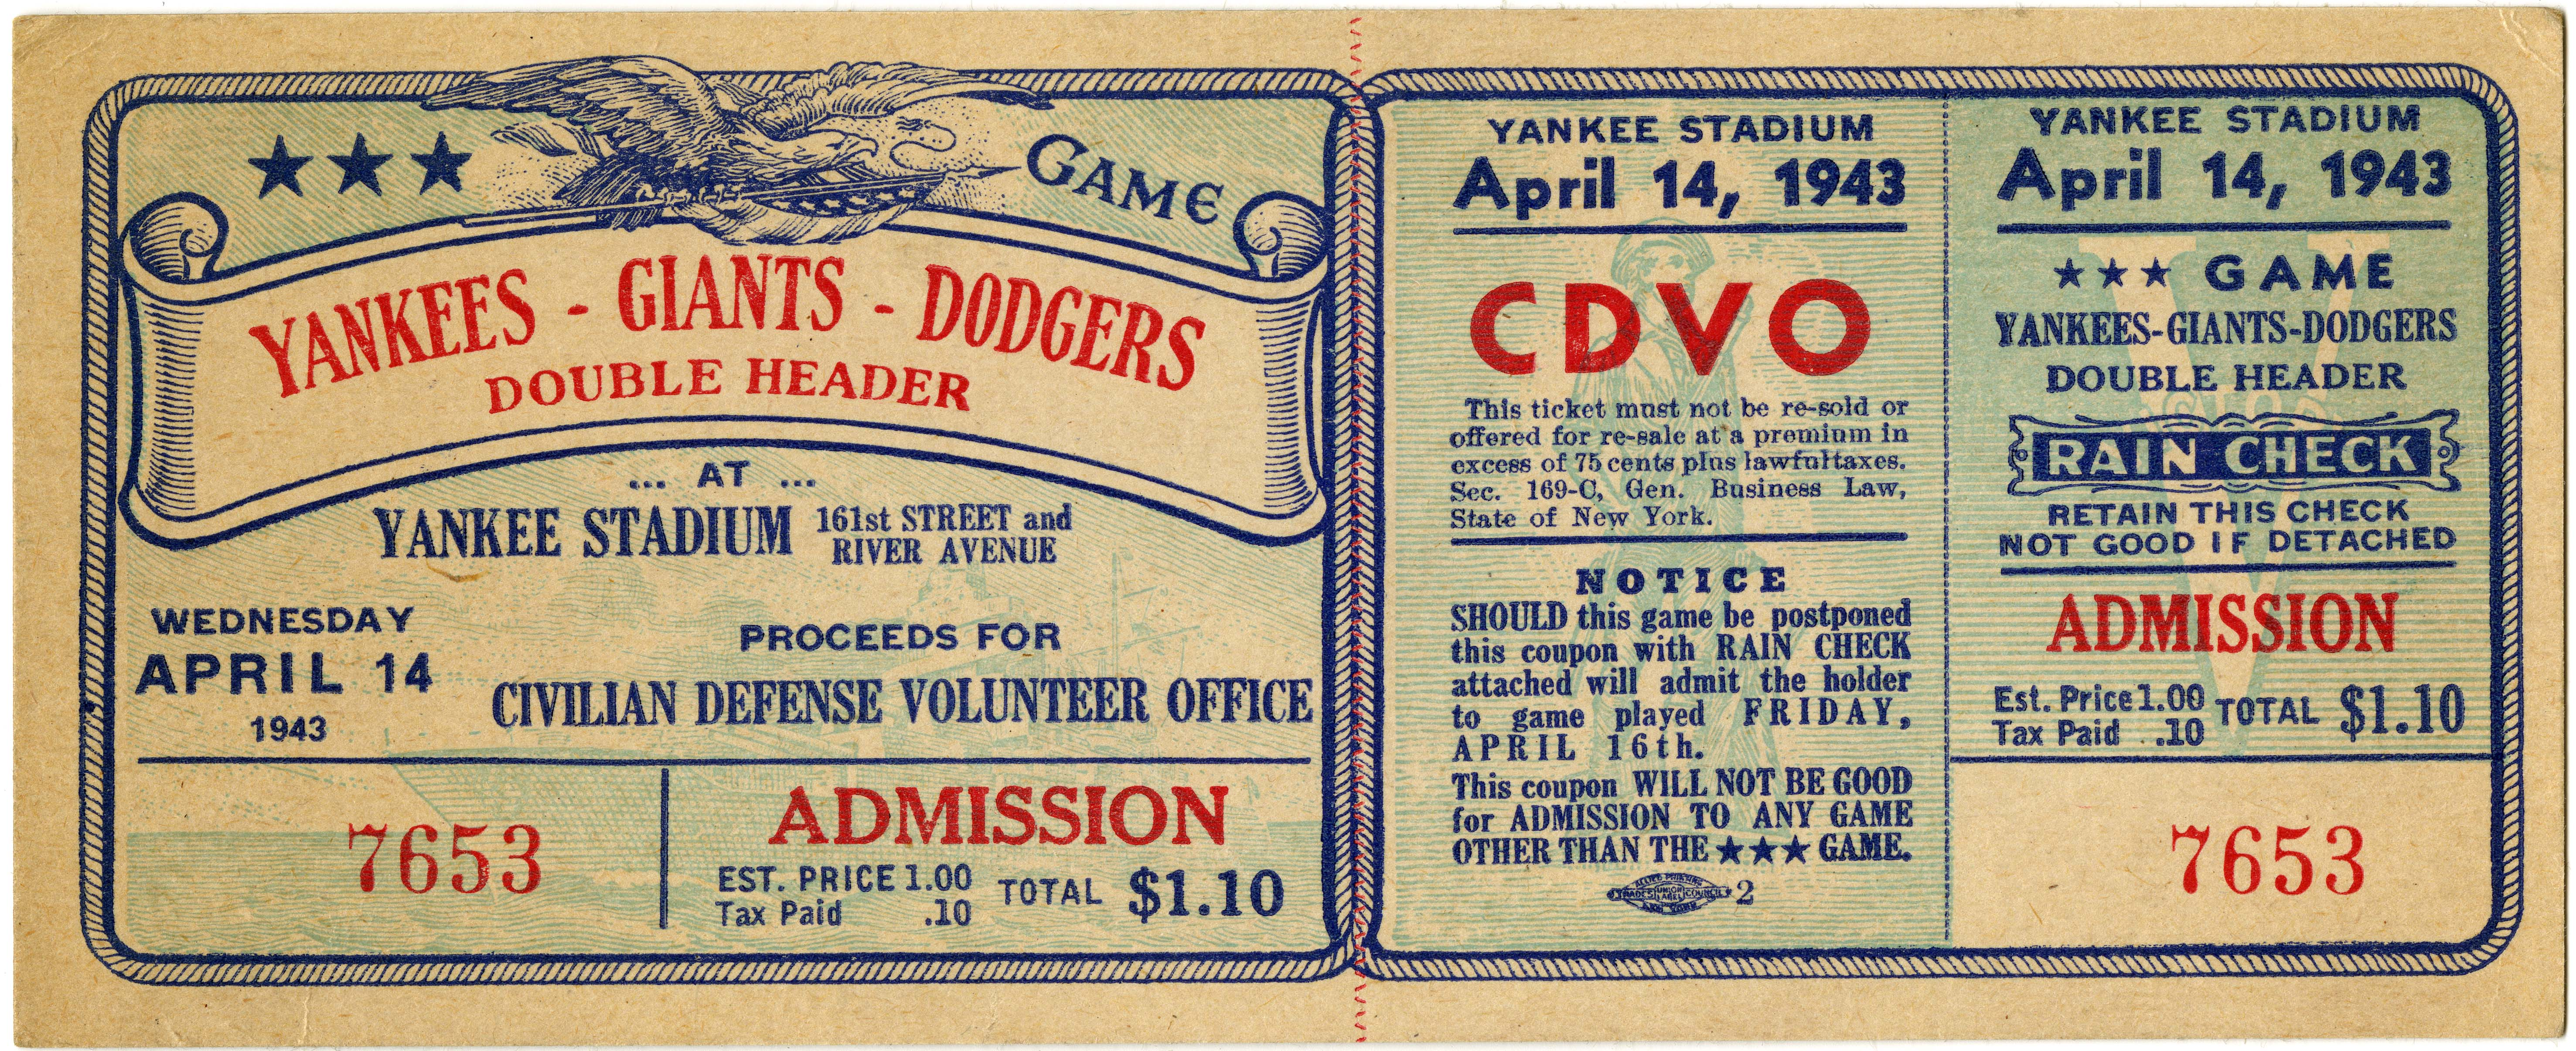 [Unused ticket, Yankees-Giants-Dodgers Double Header], April 14, 1943 (GLC09414)